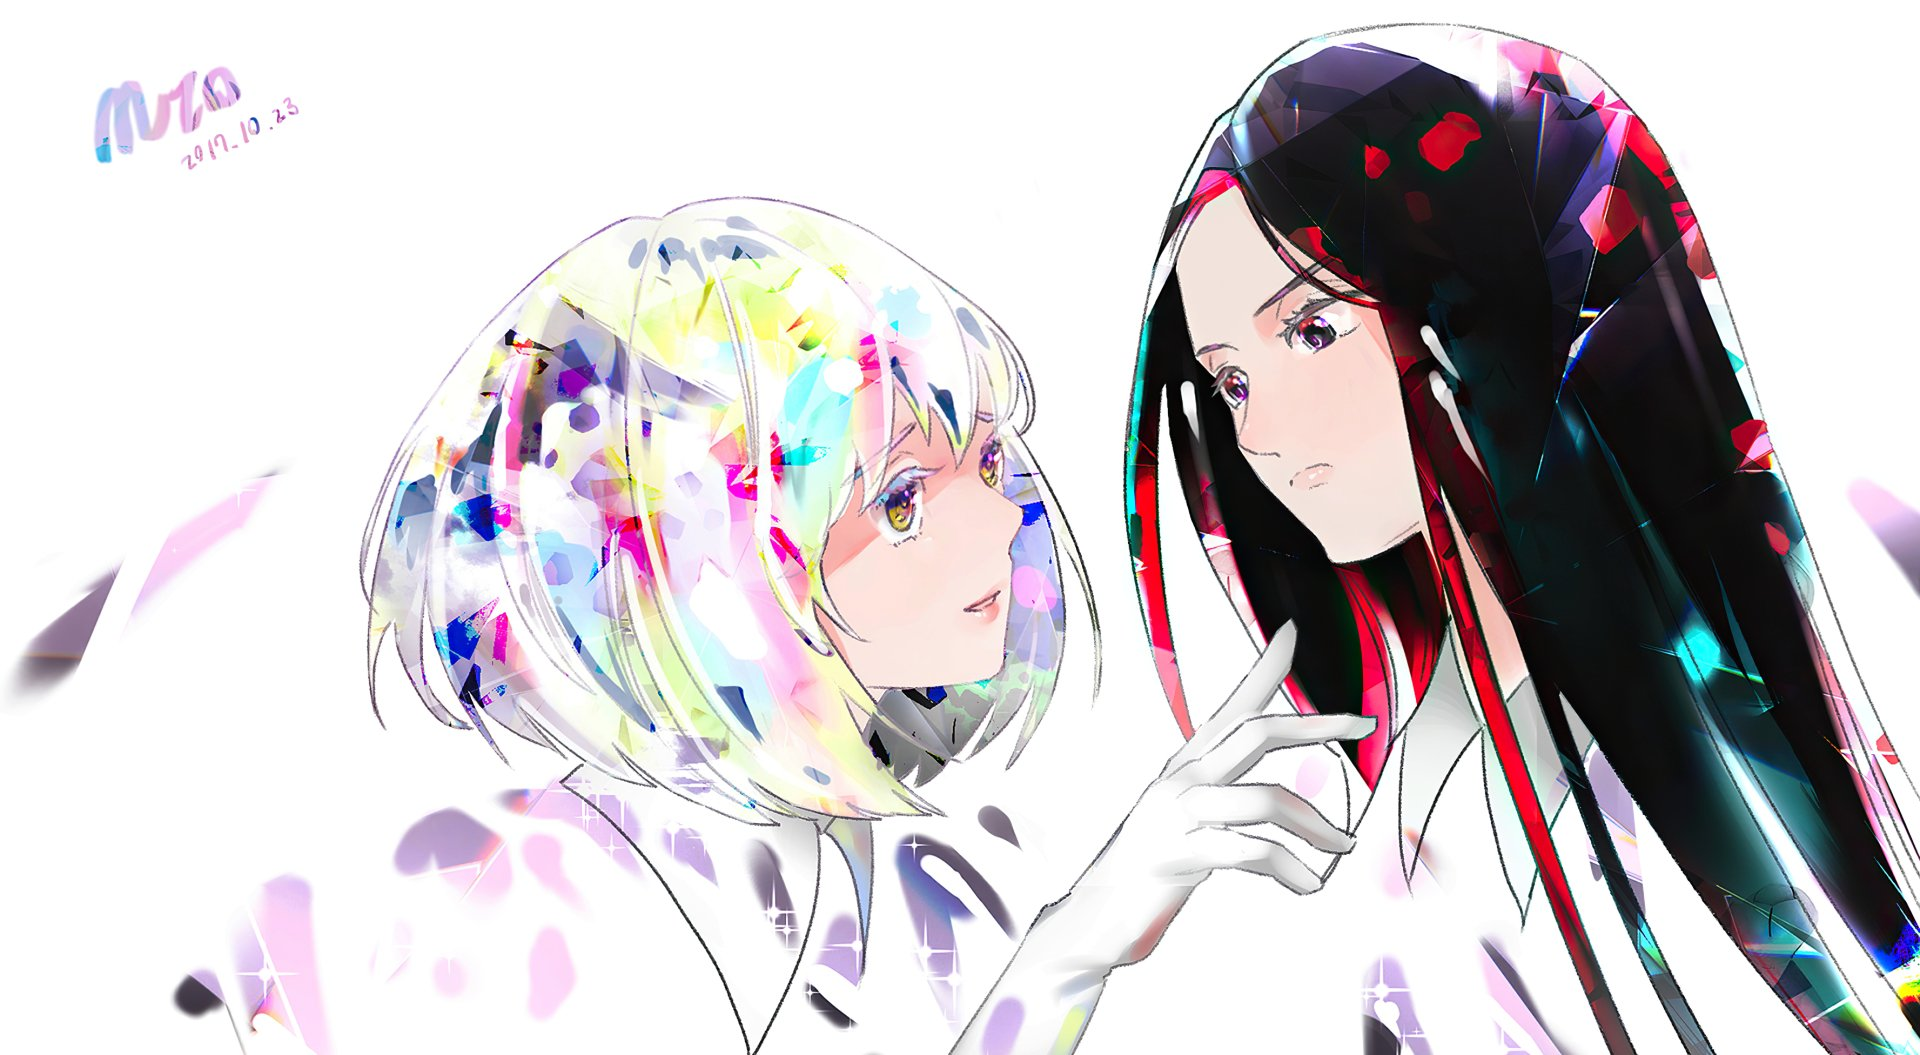 Houseki No Kuni Wallpaper: Houseki No Kuni Wallpaper And Background Image